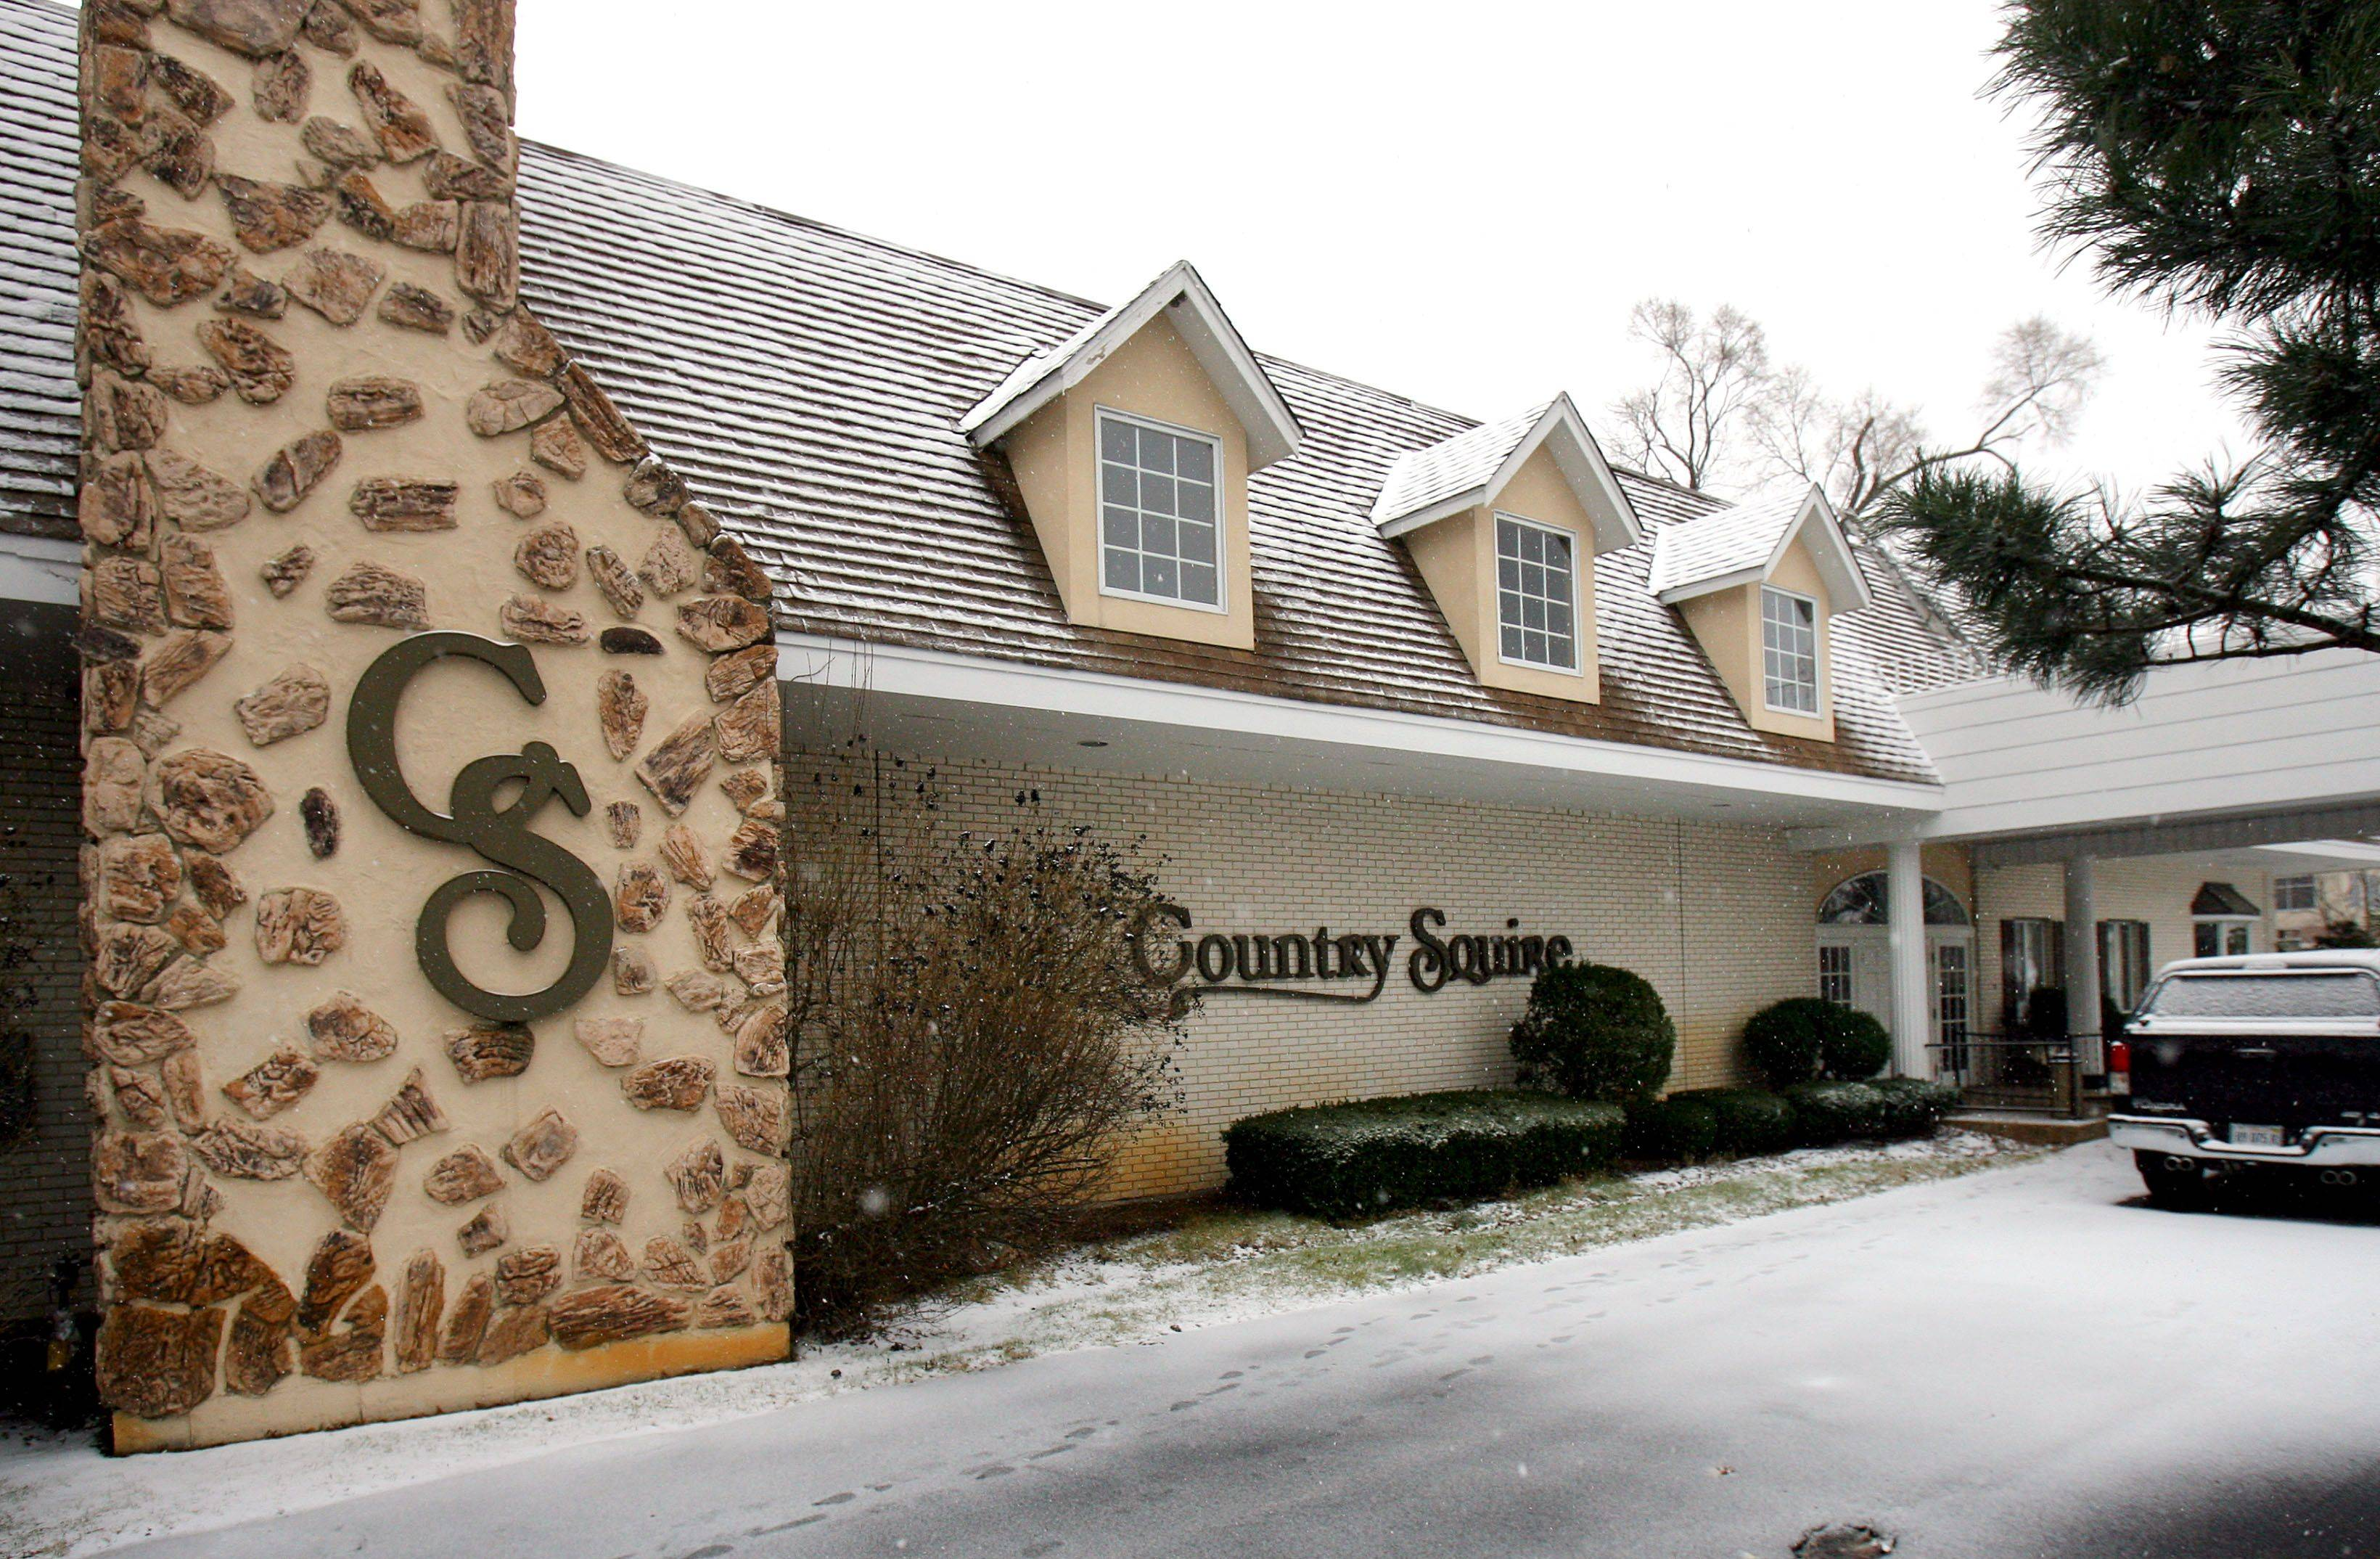 Hospital buys Country Squire property, plans site review